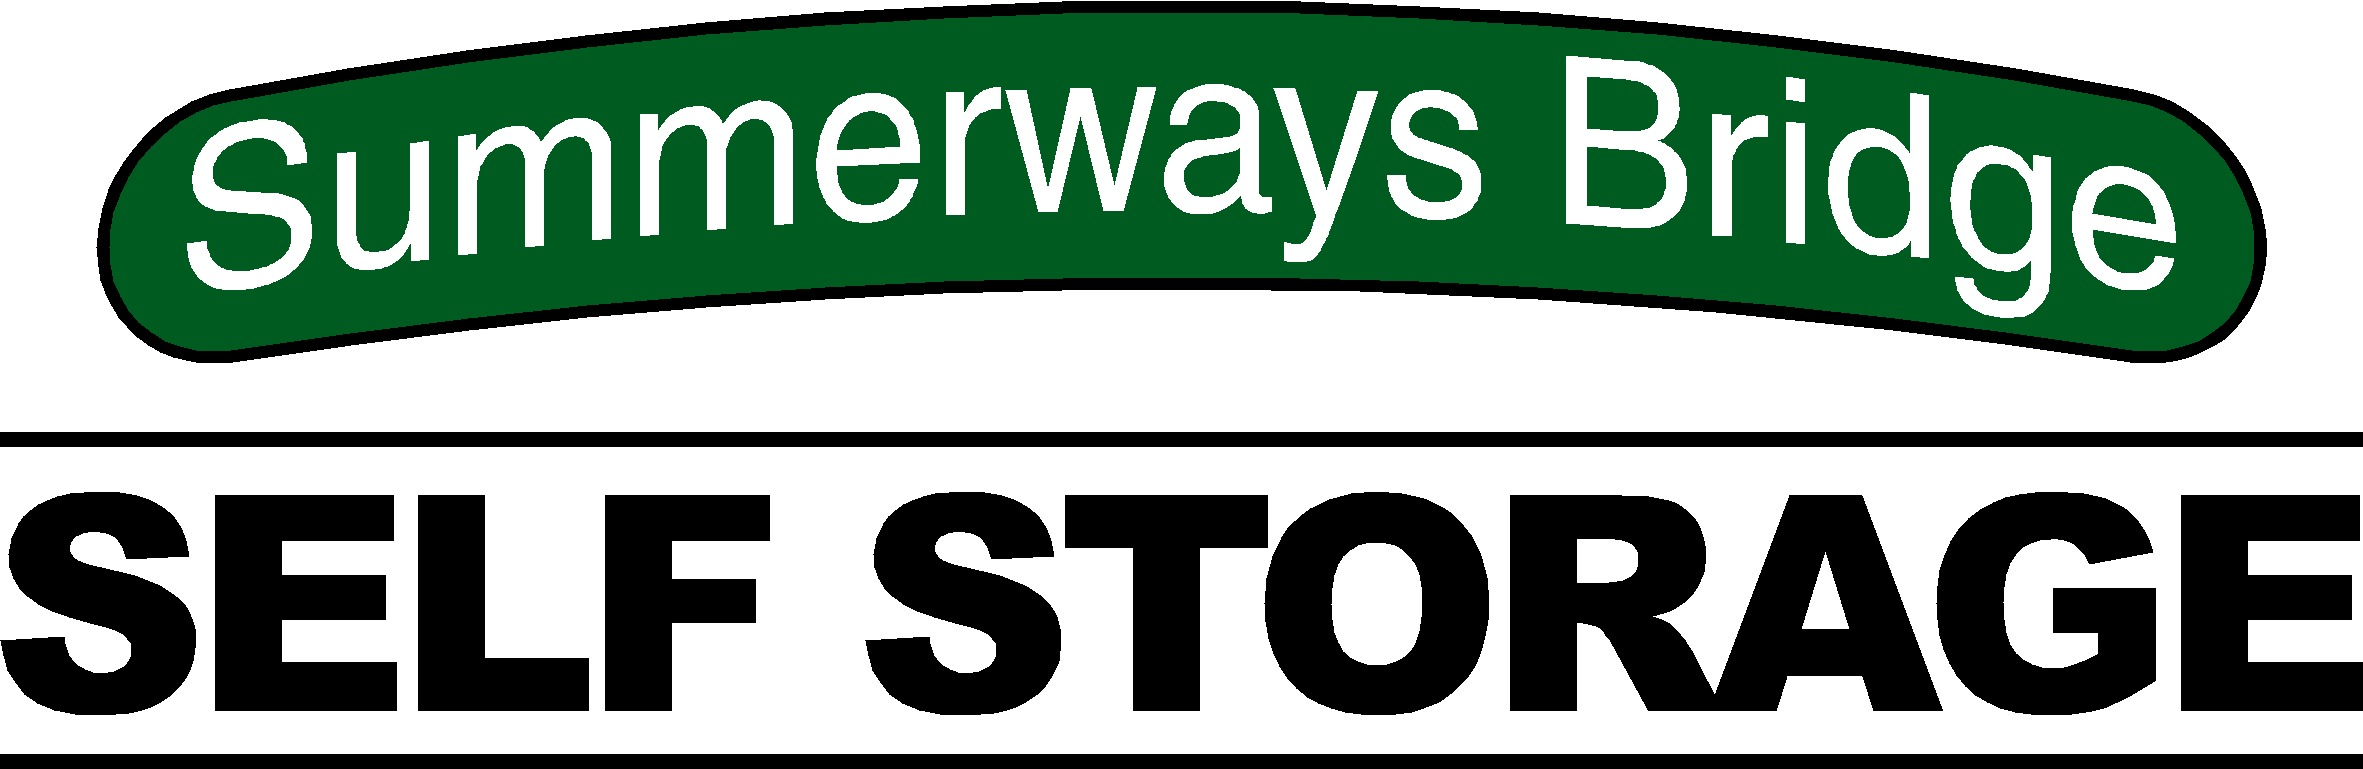 Summerways Bridge Self Storage